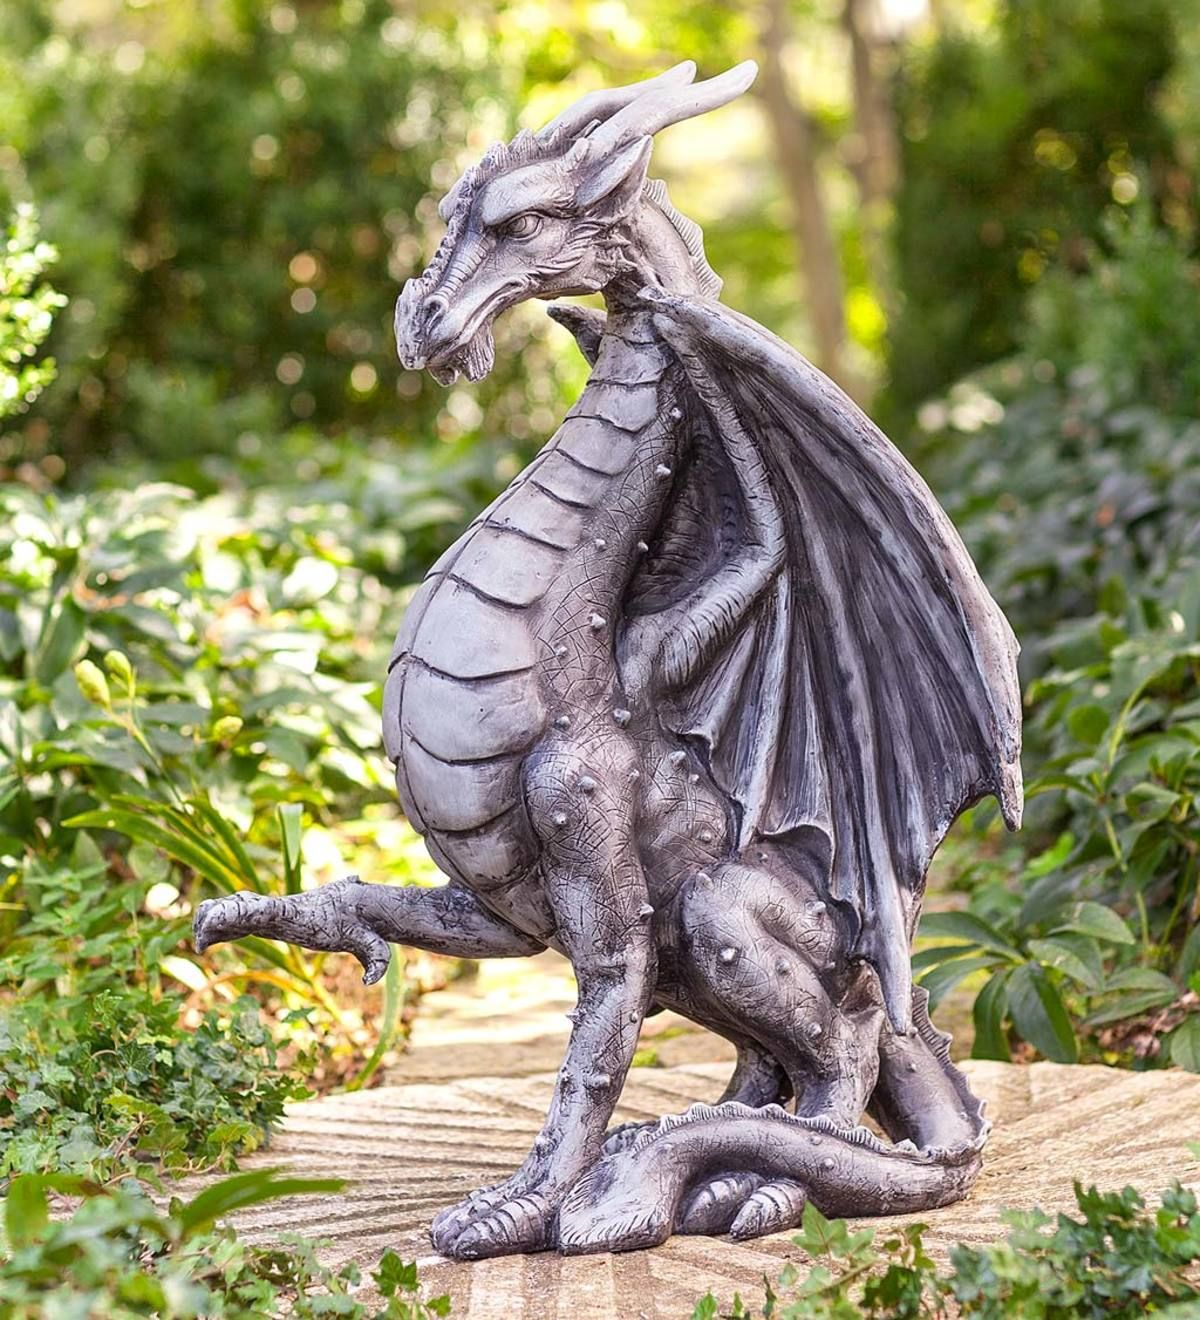 Large Indoor Outdoor Medieval Dragon Statue All Statues Sculptures Deck And Patio Yard Patio Wind And Weather Medieval Dragon Dragon Statue Dragon Sculpture